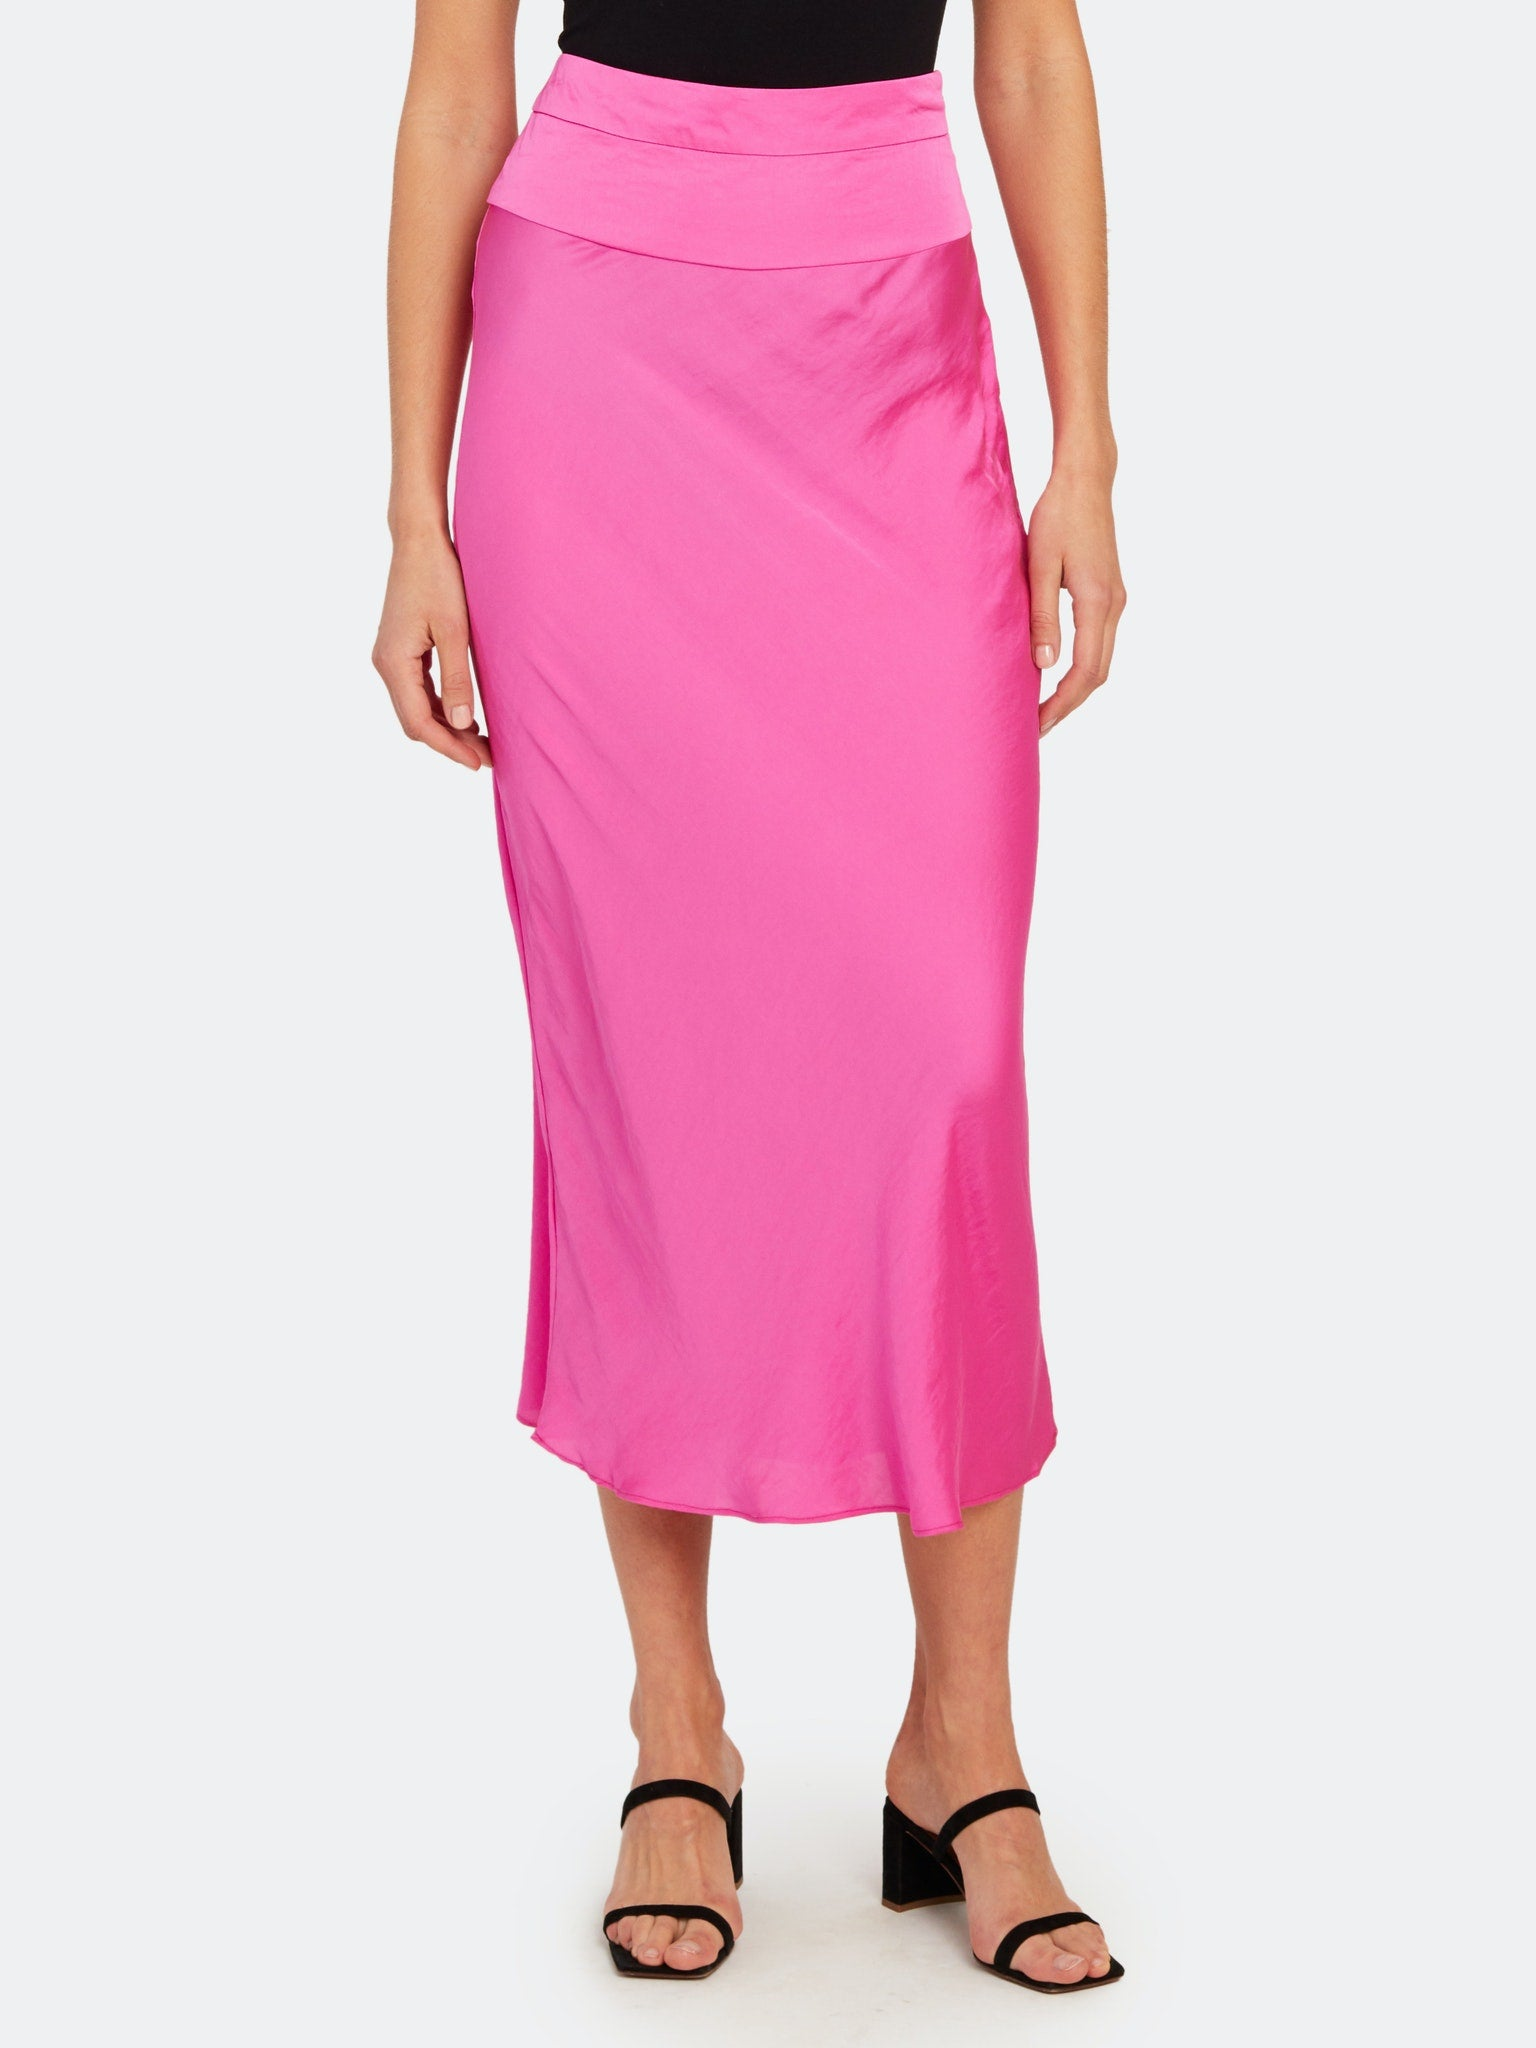 Free People Normani Bias Midi Skirt